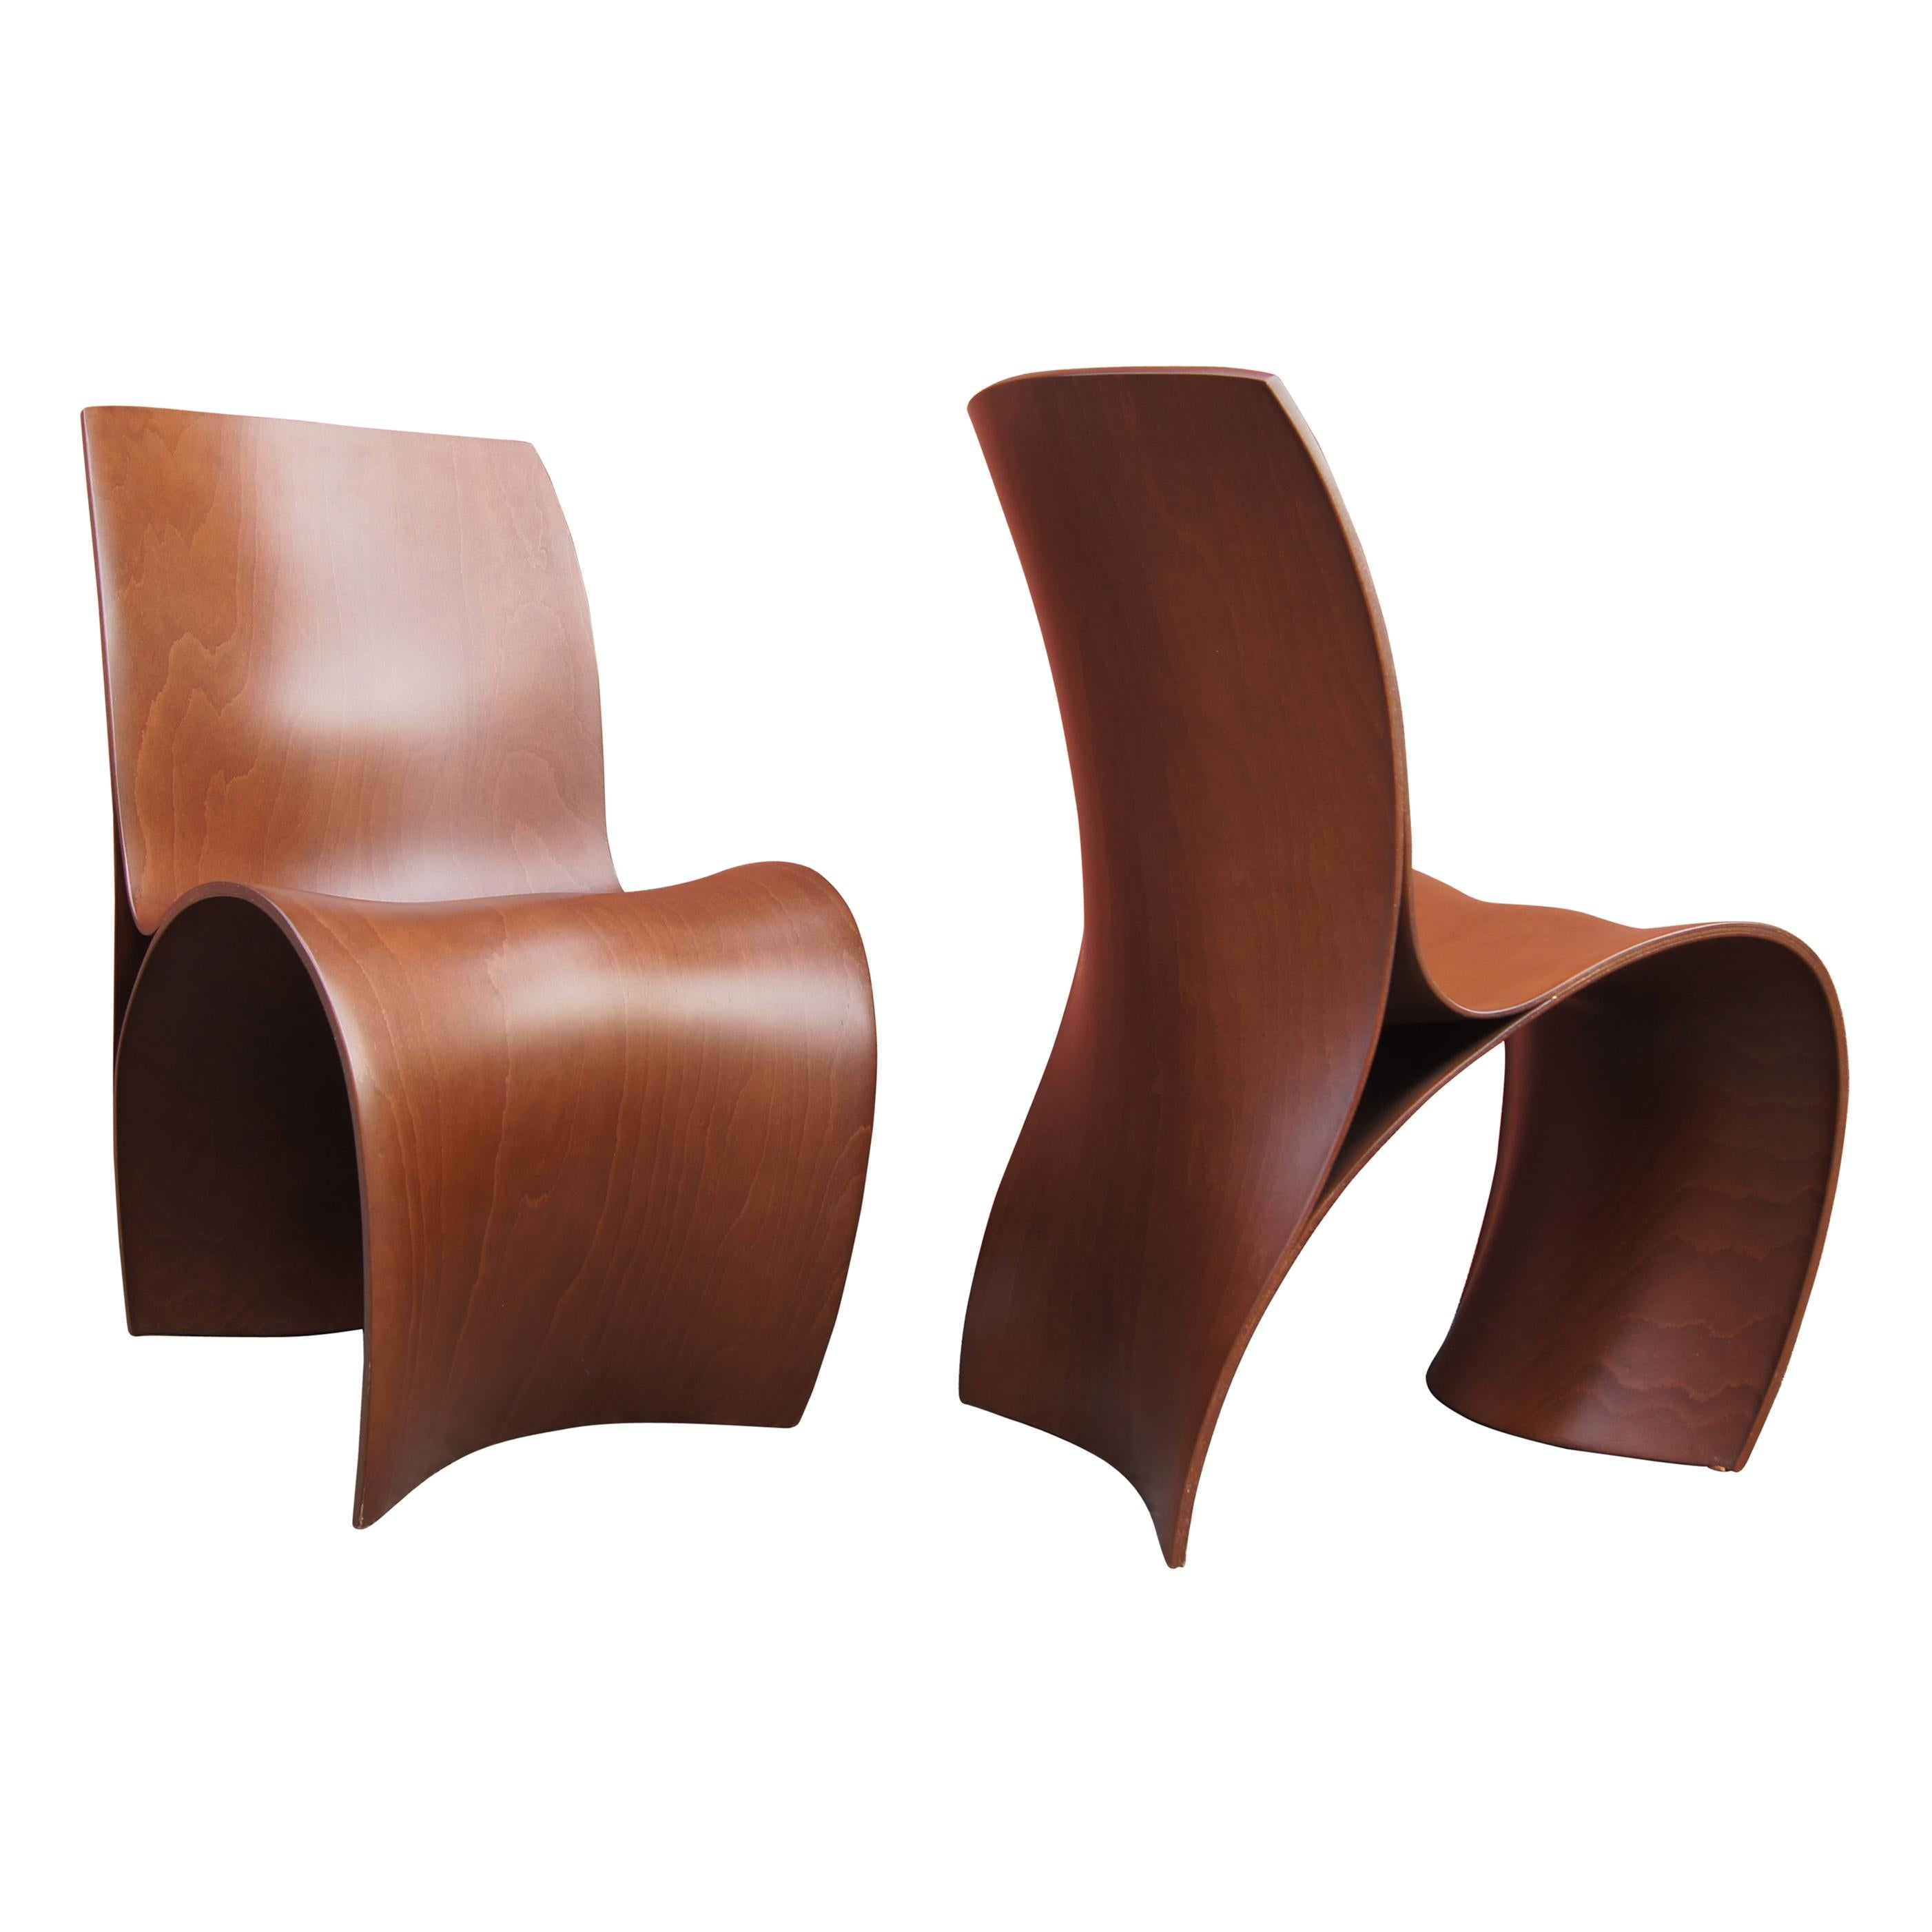 Pair of Three Skin Chairs by Ron Arad for Moroso